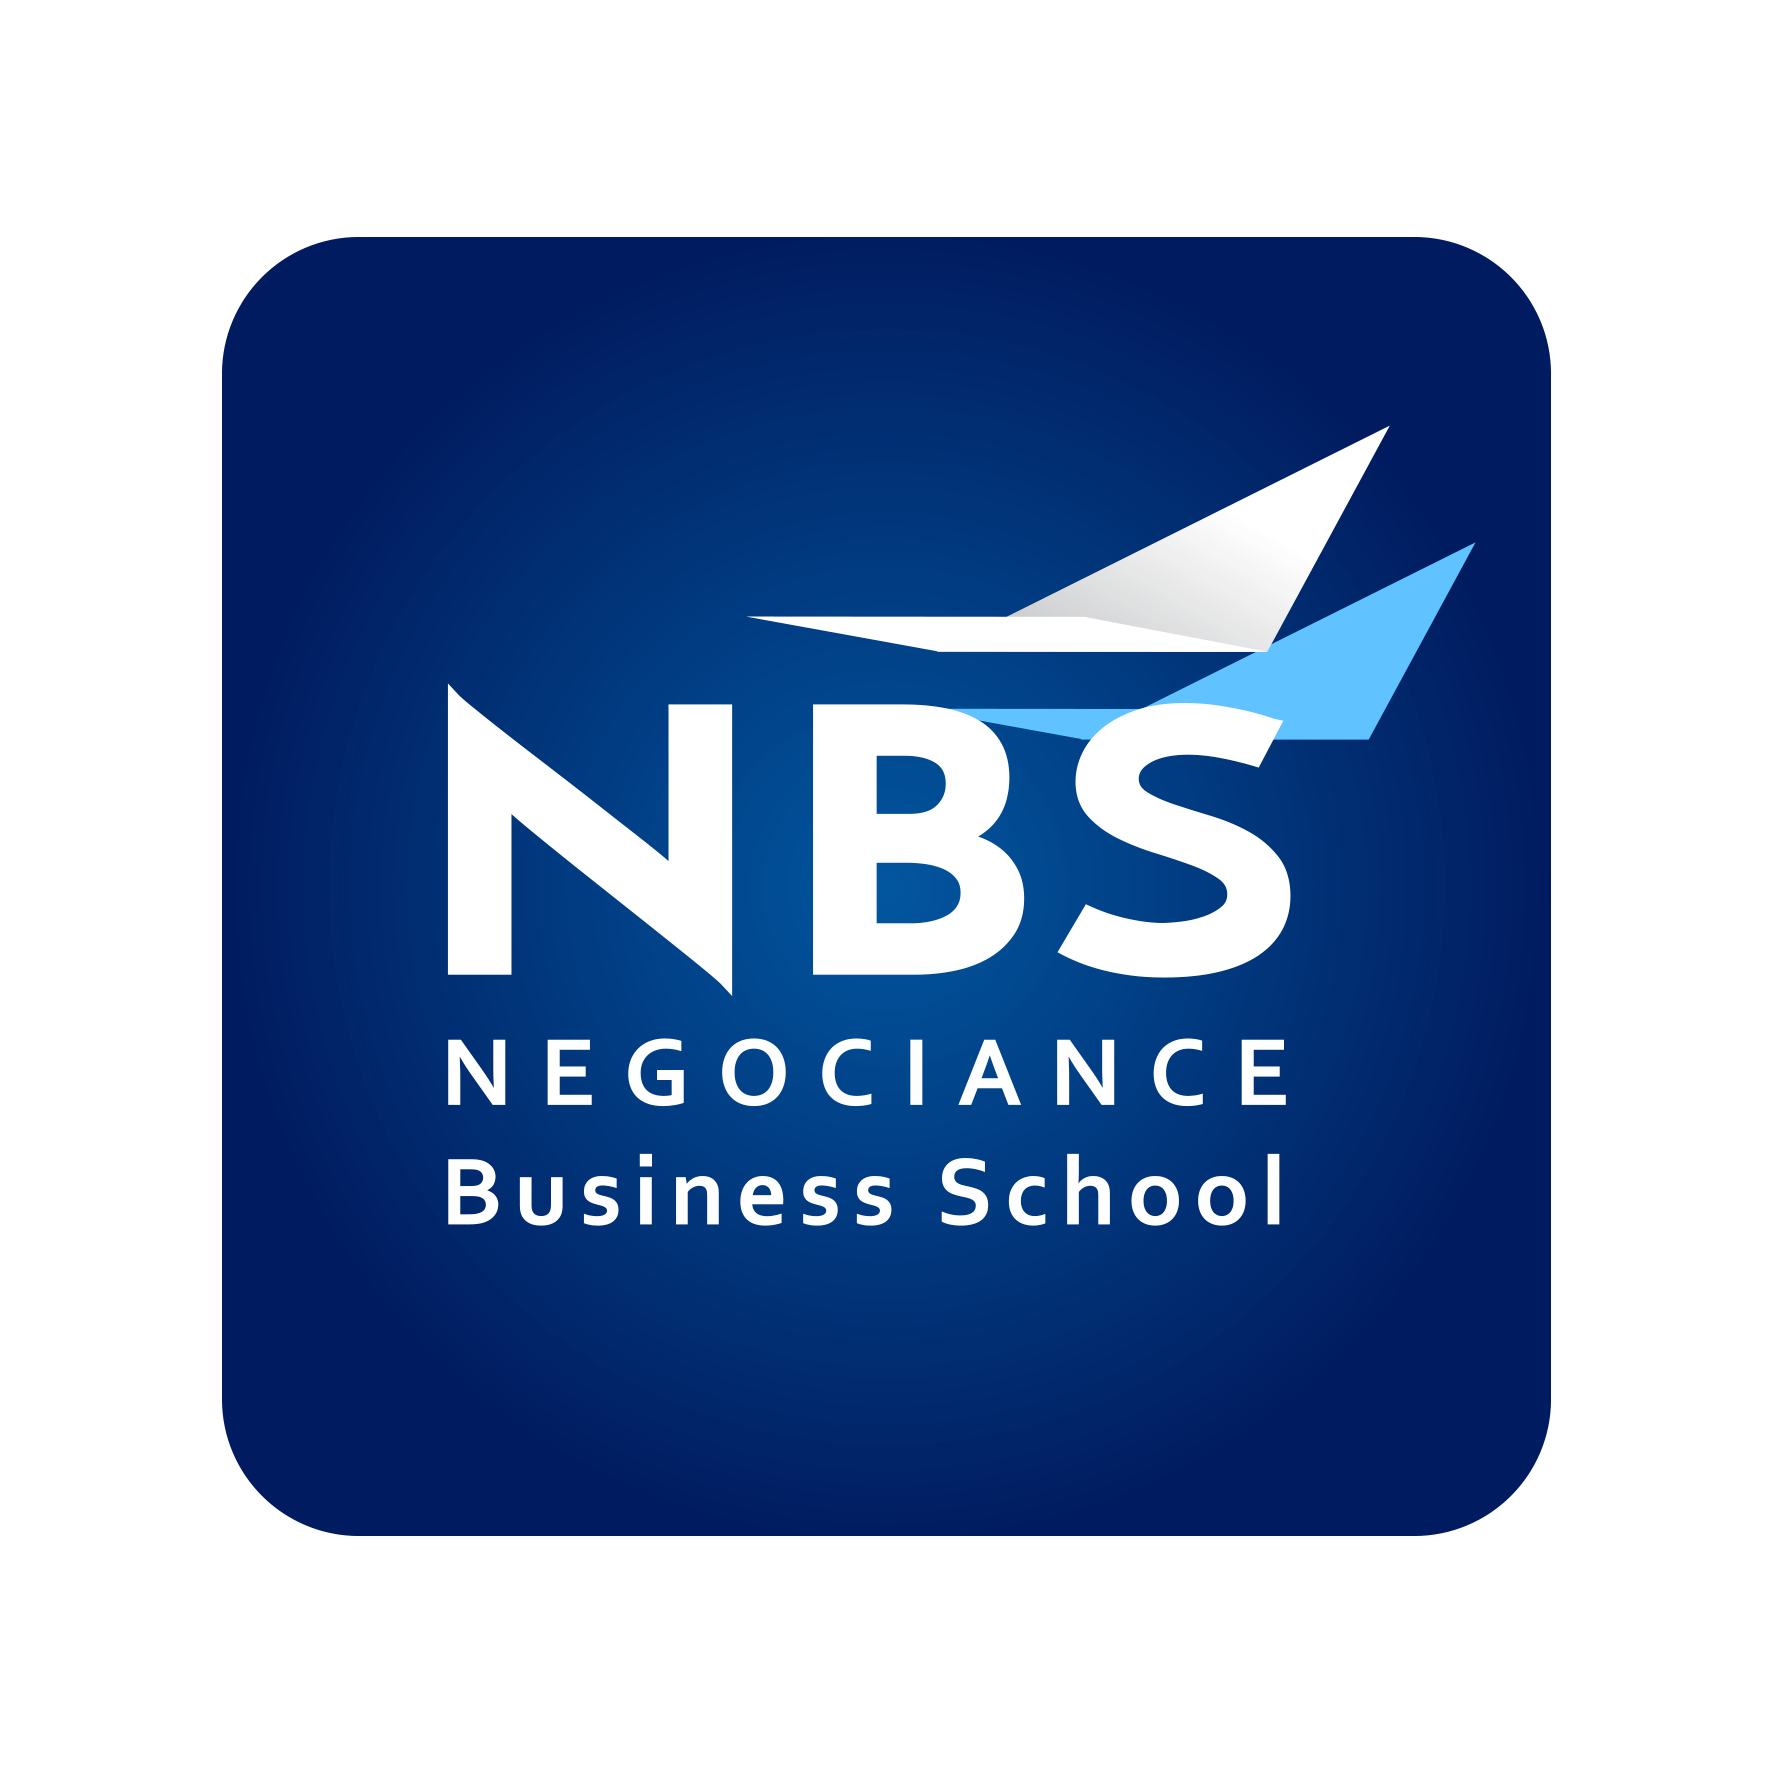 NBS - Negociance Business School